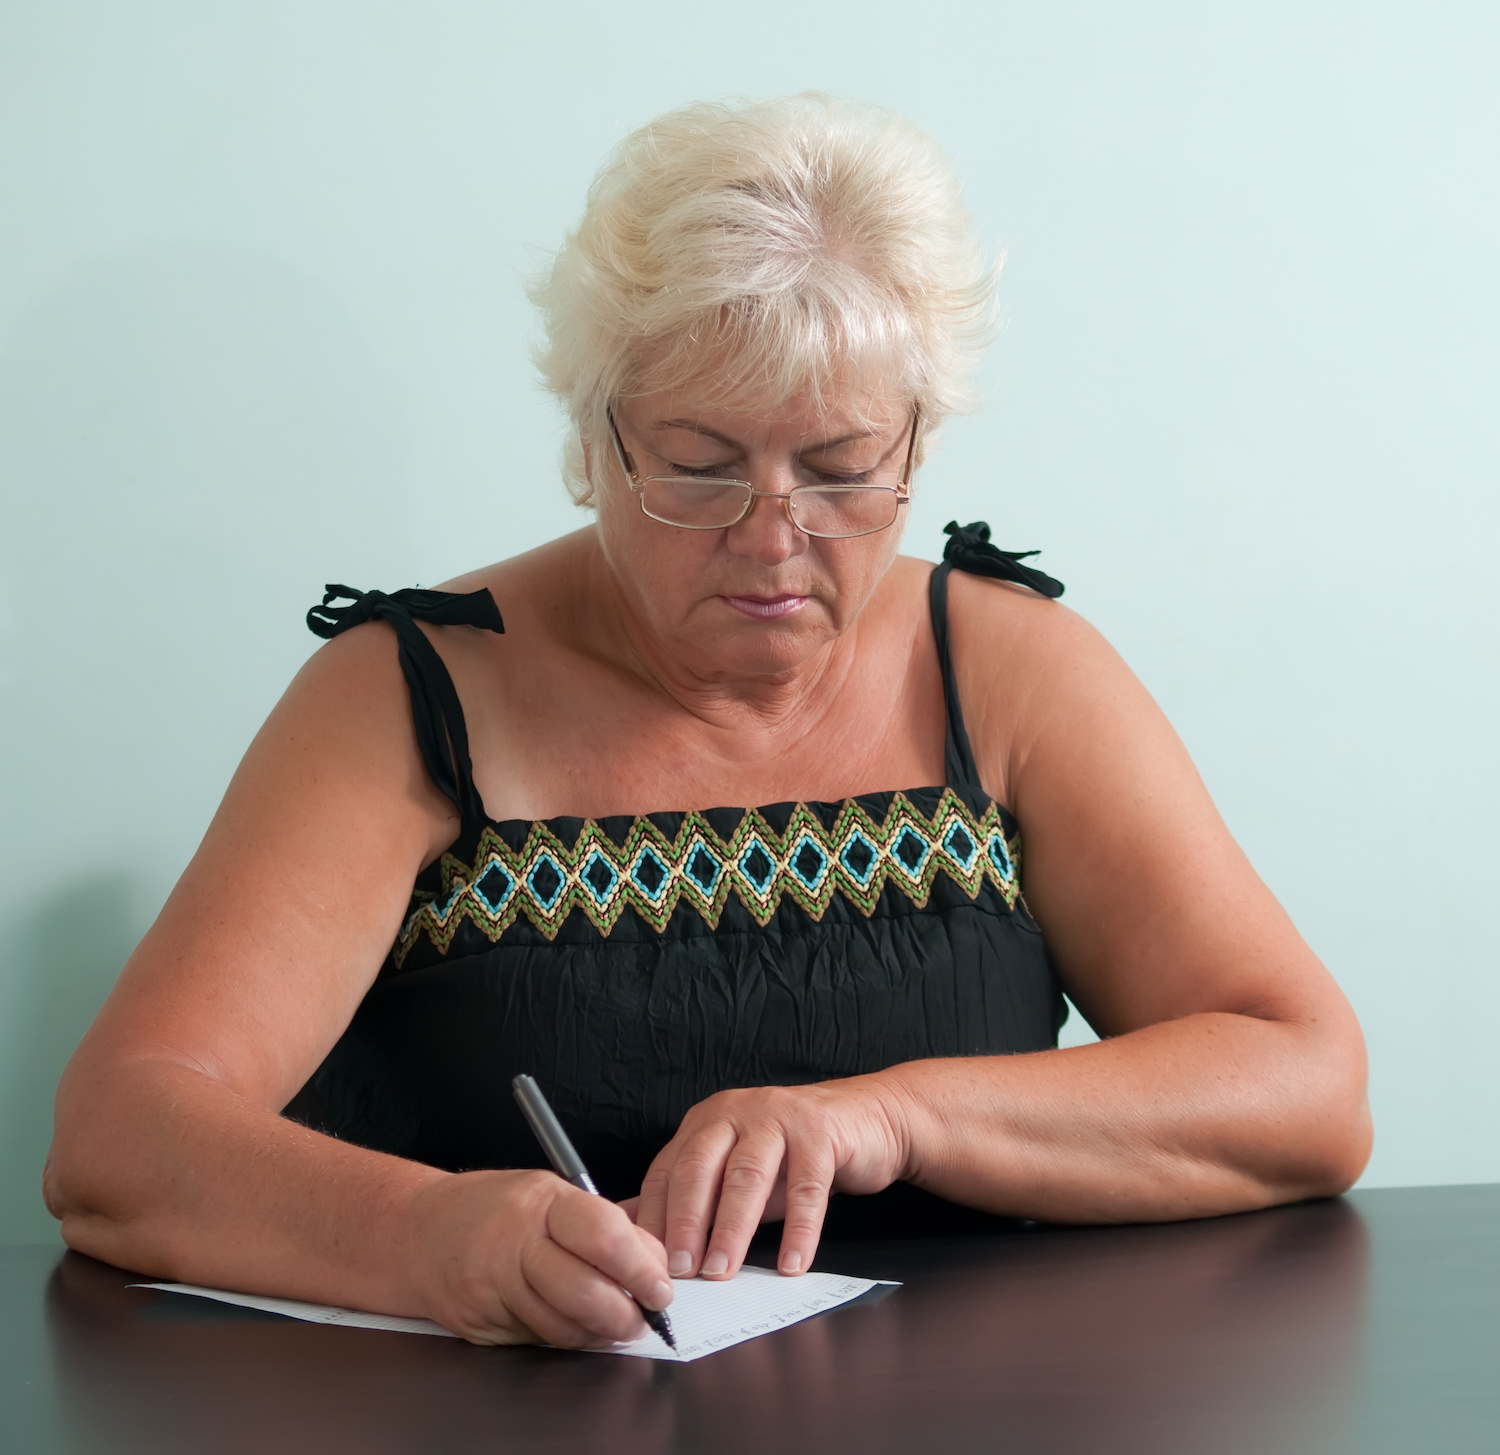 Mature woman with glasses writing a letter.